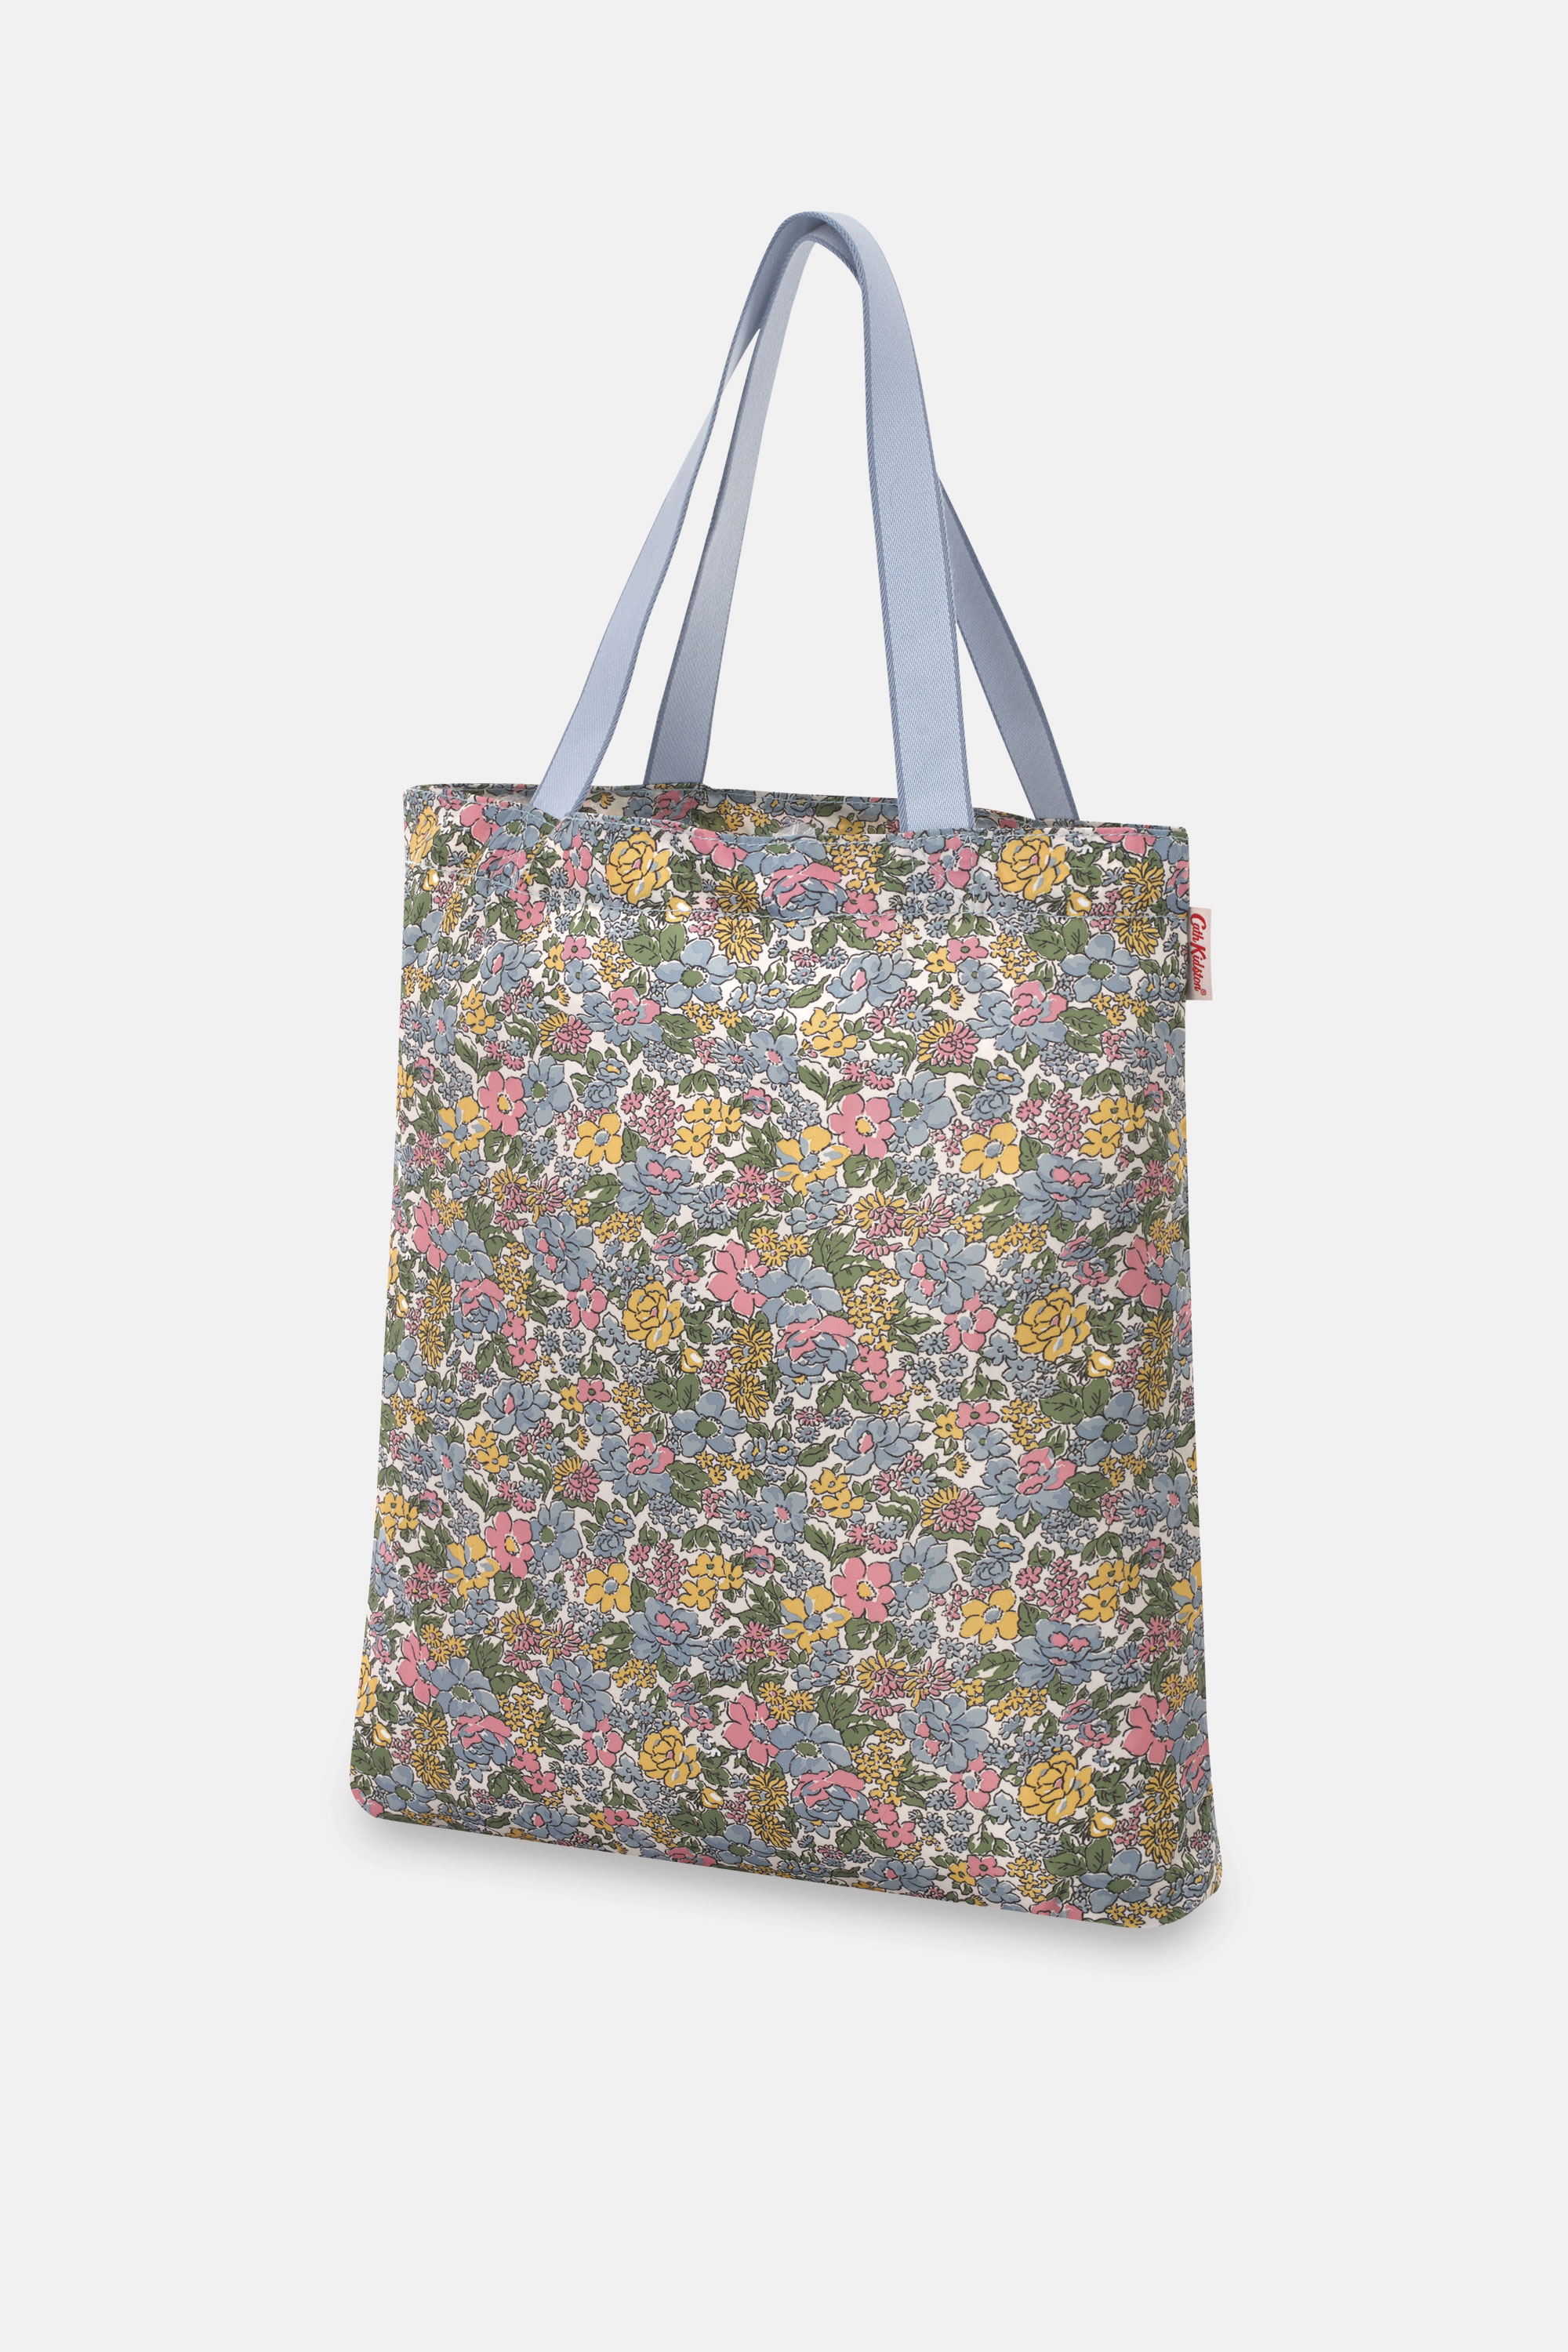 Cath Kidston Vale Floral Small Foldaway Tote in Green